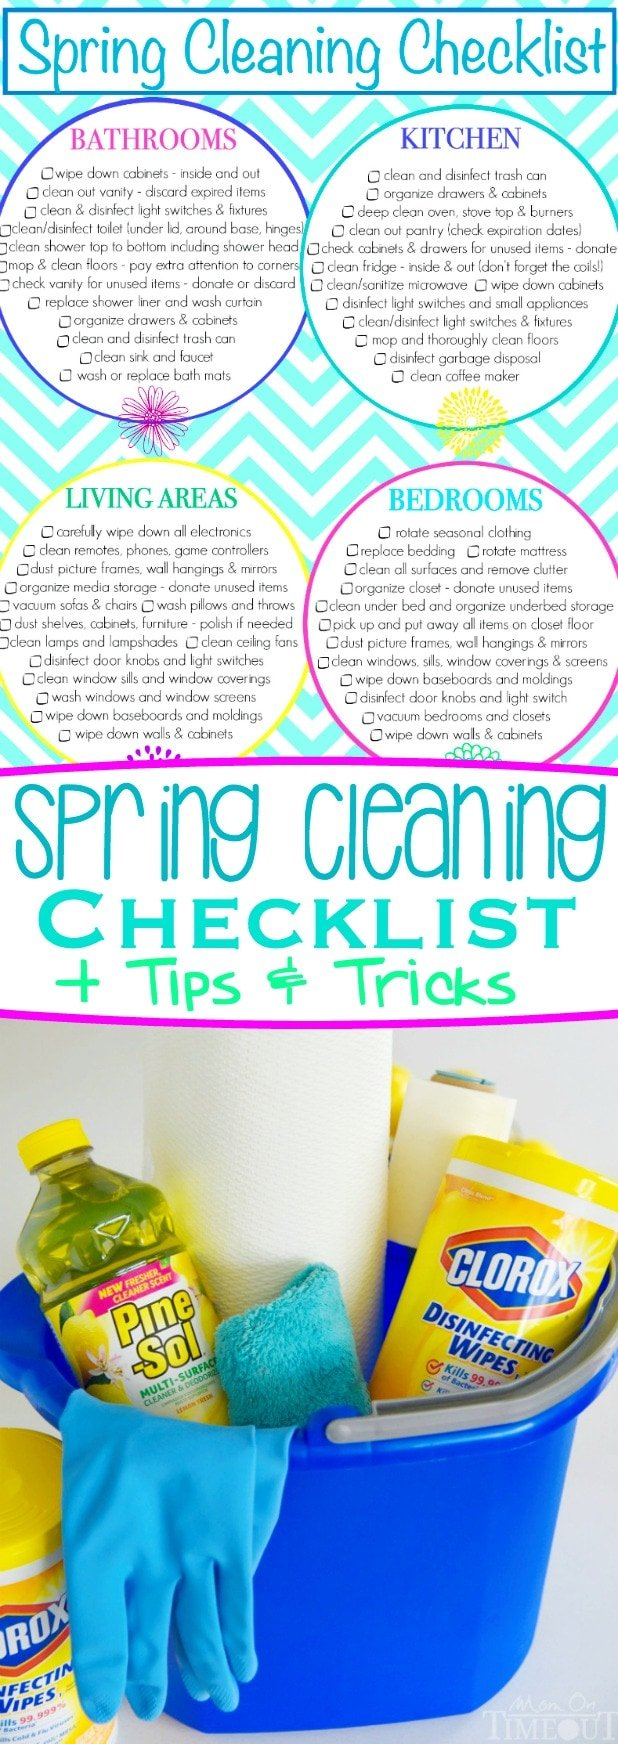 Get a jump start on spring cleaning this year with this printable Spring Cleaning Checklist! Plus I've got included my favorite tips and tricks that will have your home sparkling in no time! // Mom On Timeout